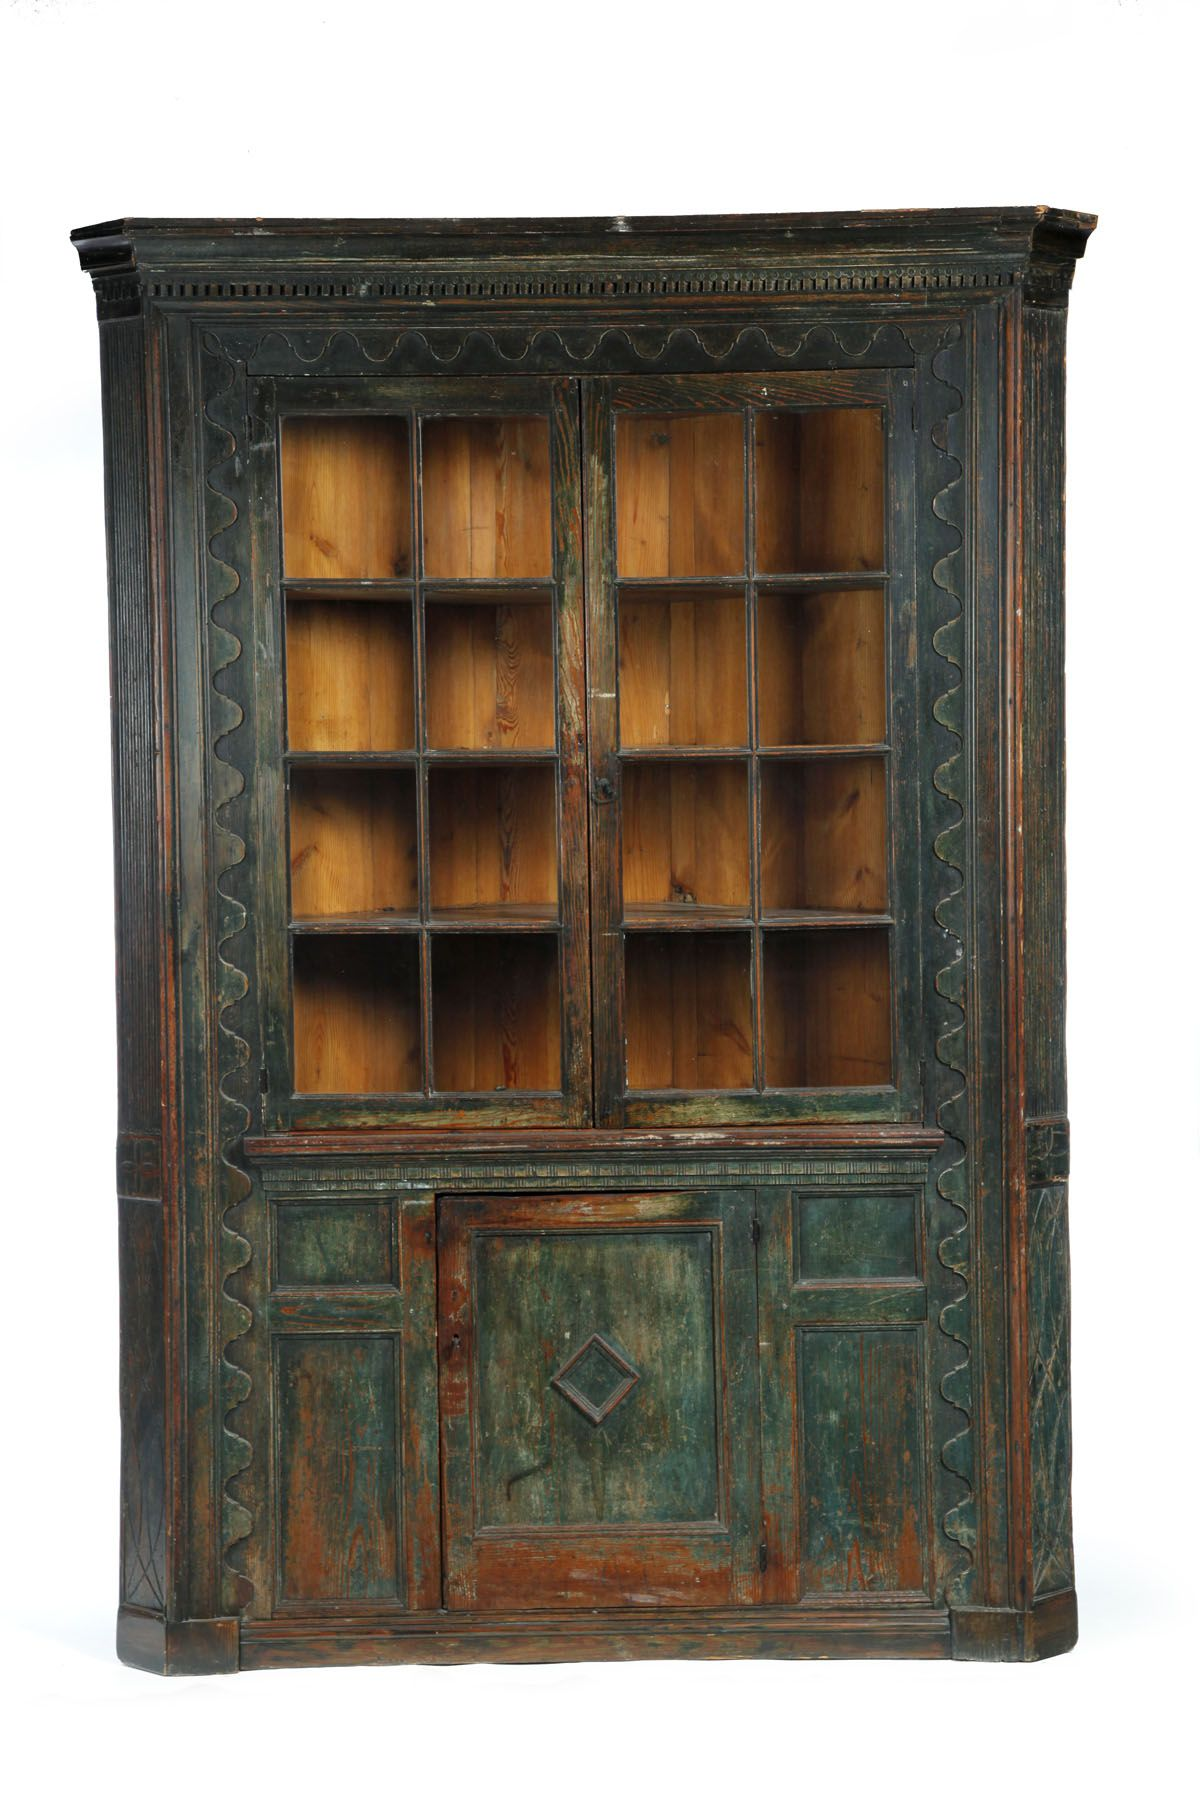 CORNER CUPBOARD - Attributed to the Ralph family, Sussex County ...